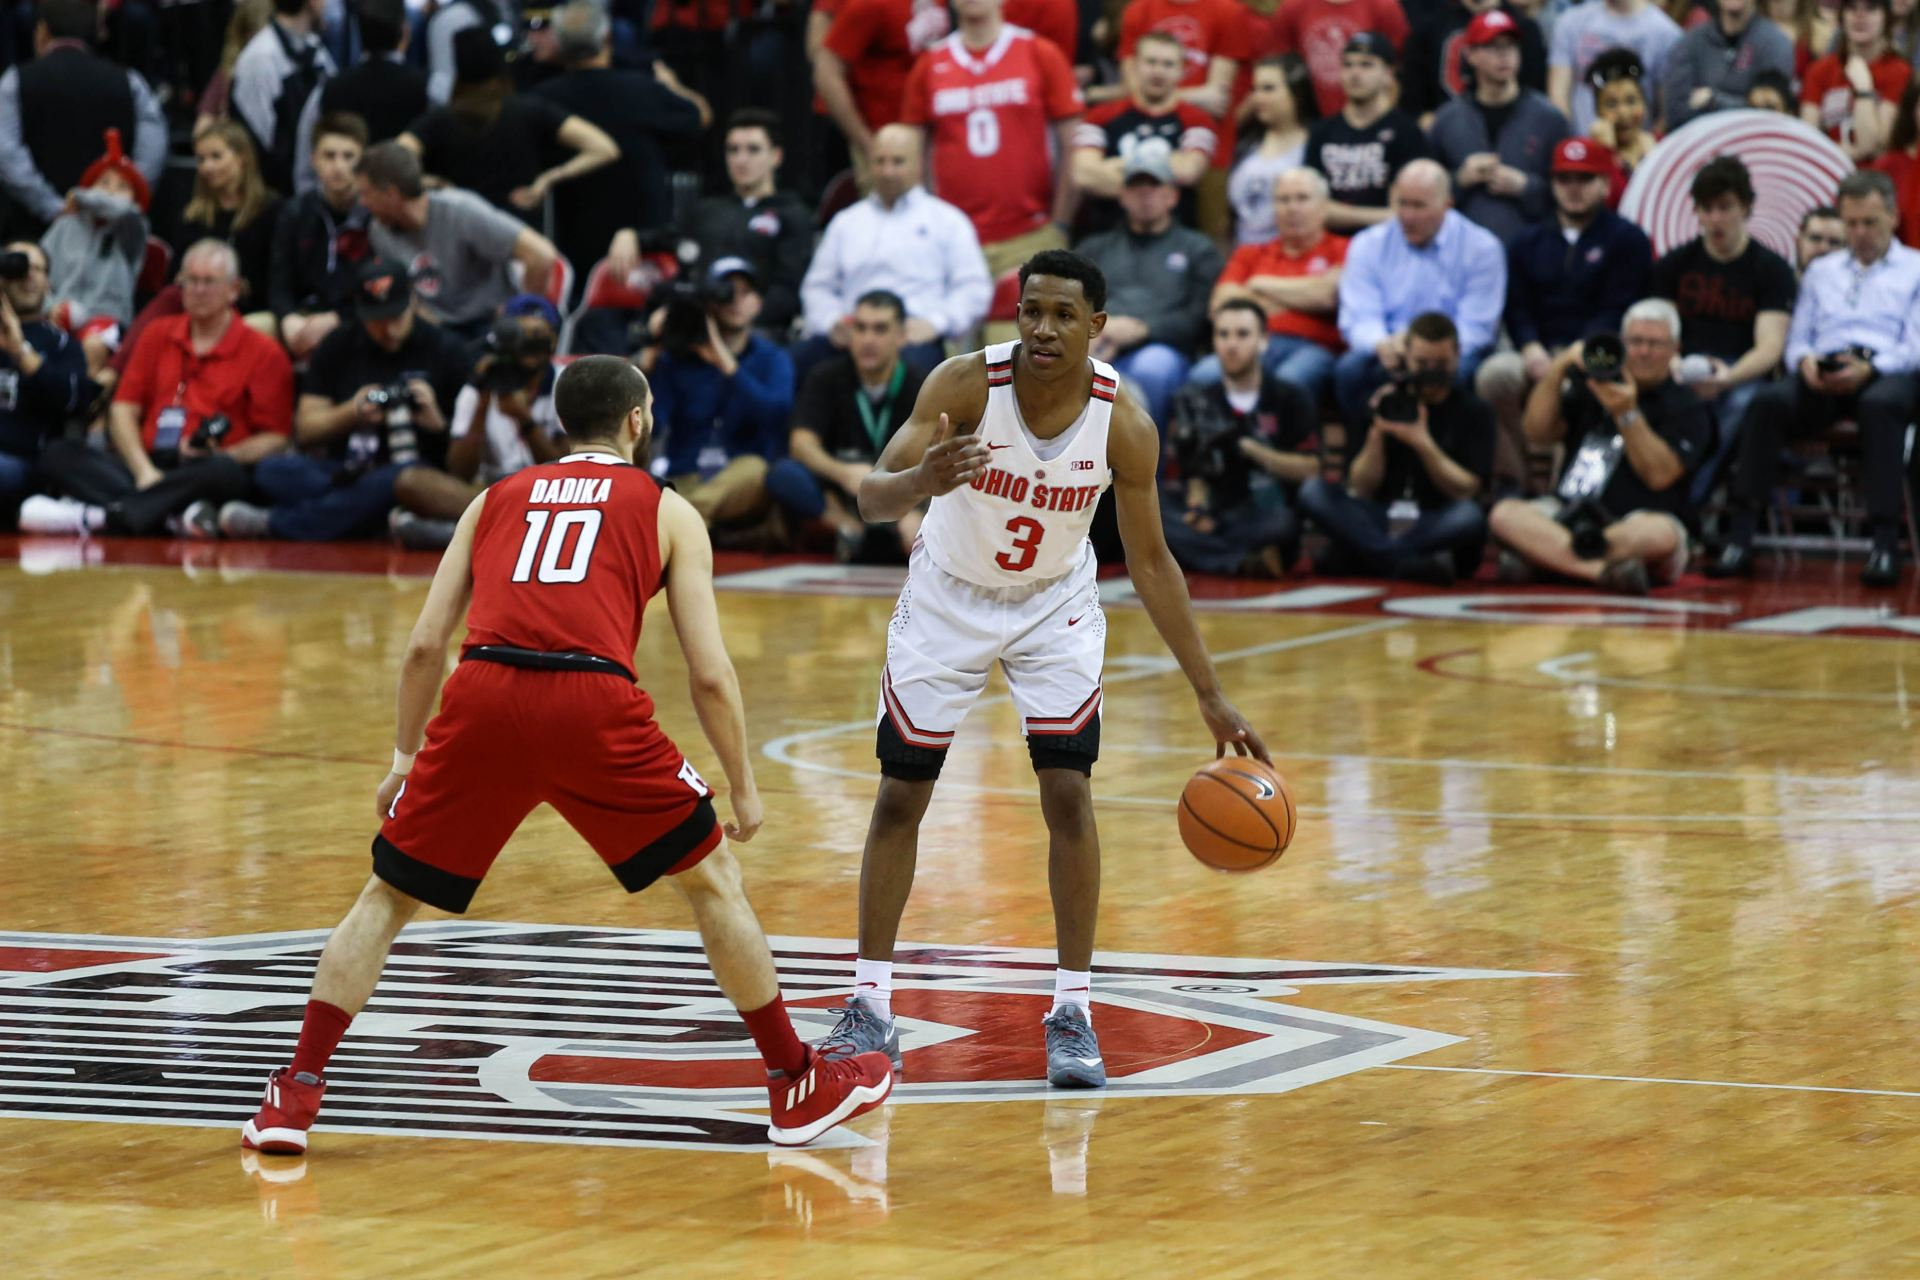 Men's Basketball: No. 16 Ohio State's regular season comes to an end against Indiana with future uncertain